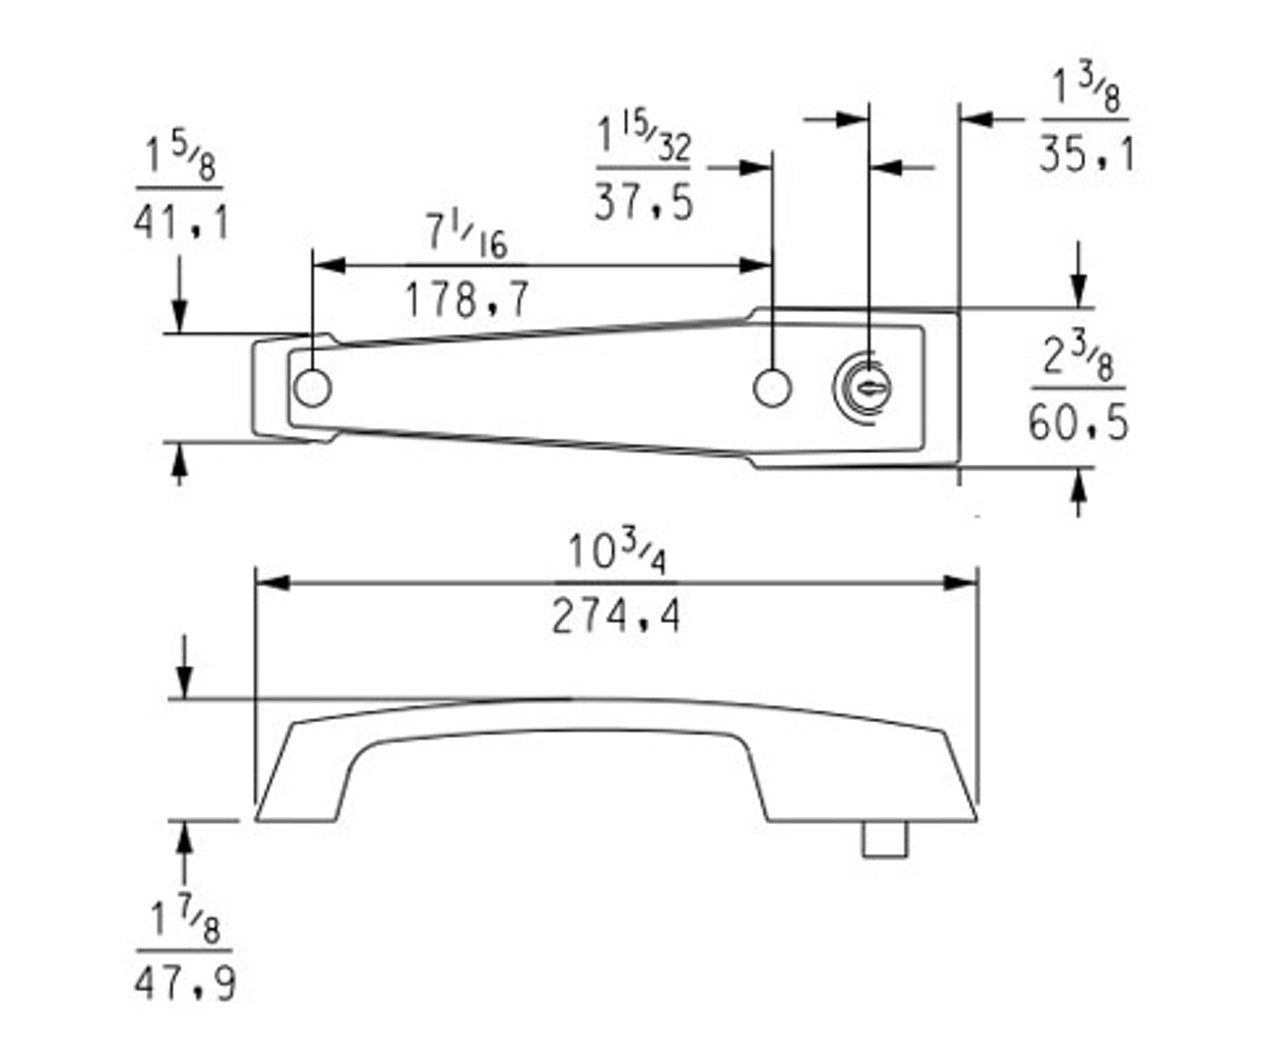 Kason-1229C-Cylinder-locking-handle-with-inside-release-11229C00025-11229C00029-dimensions